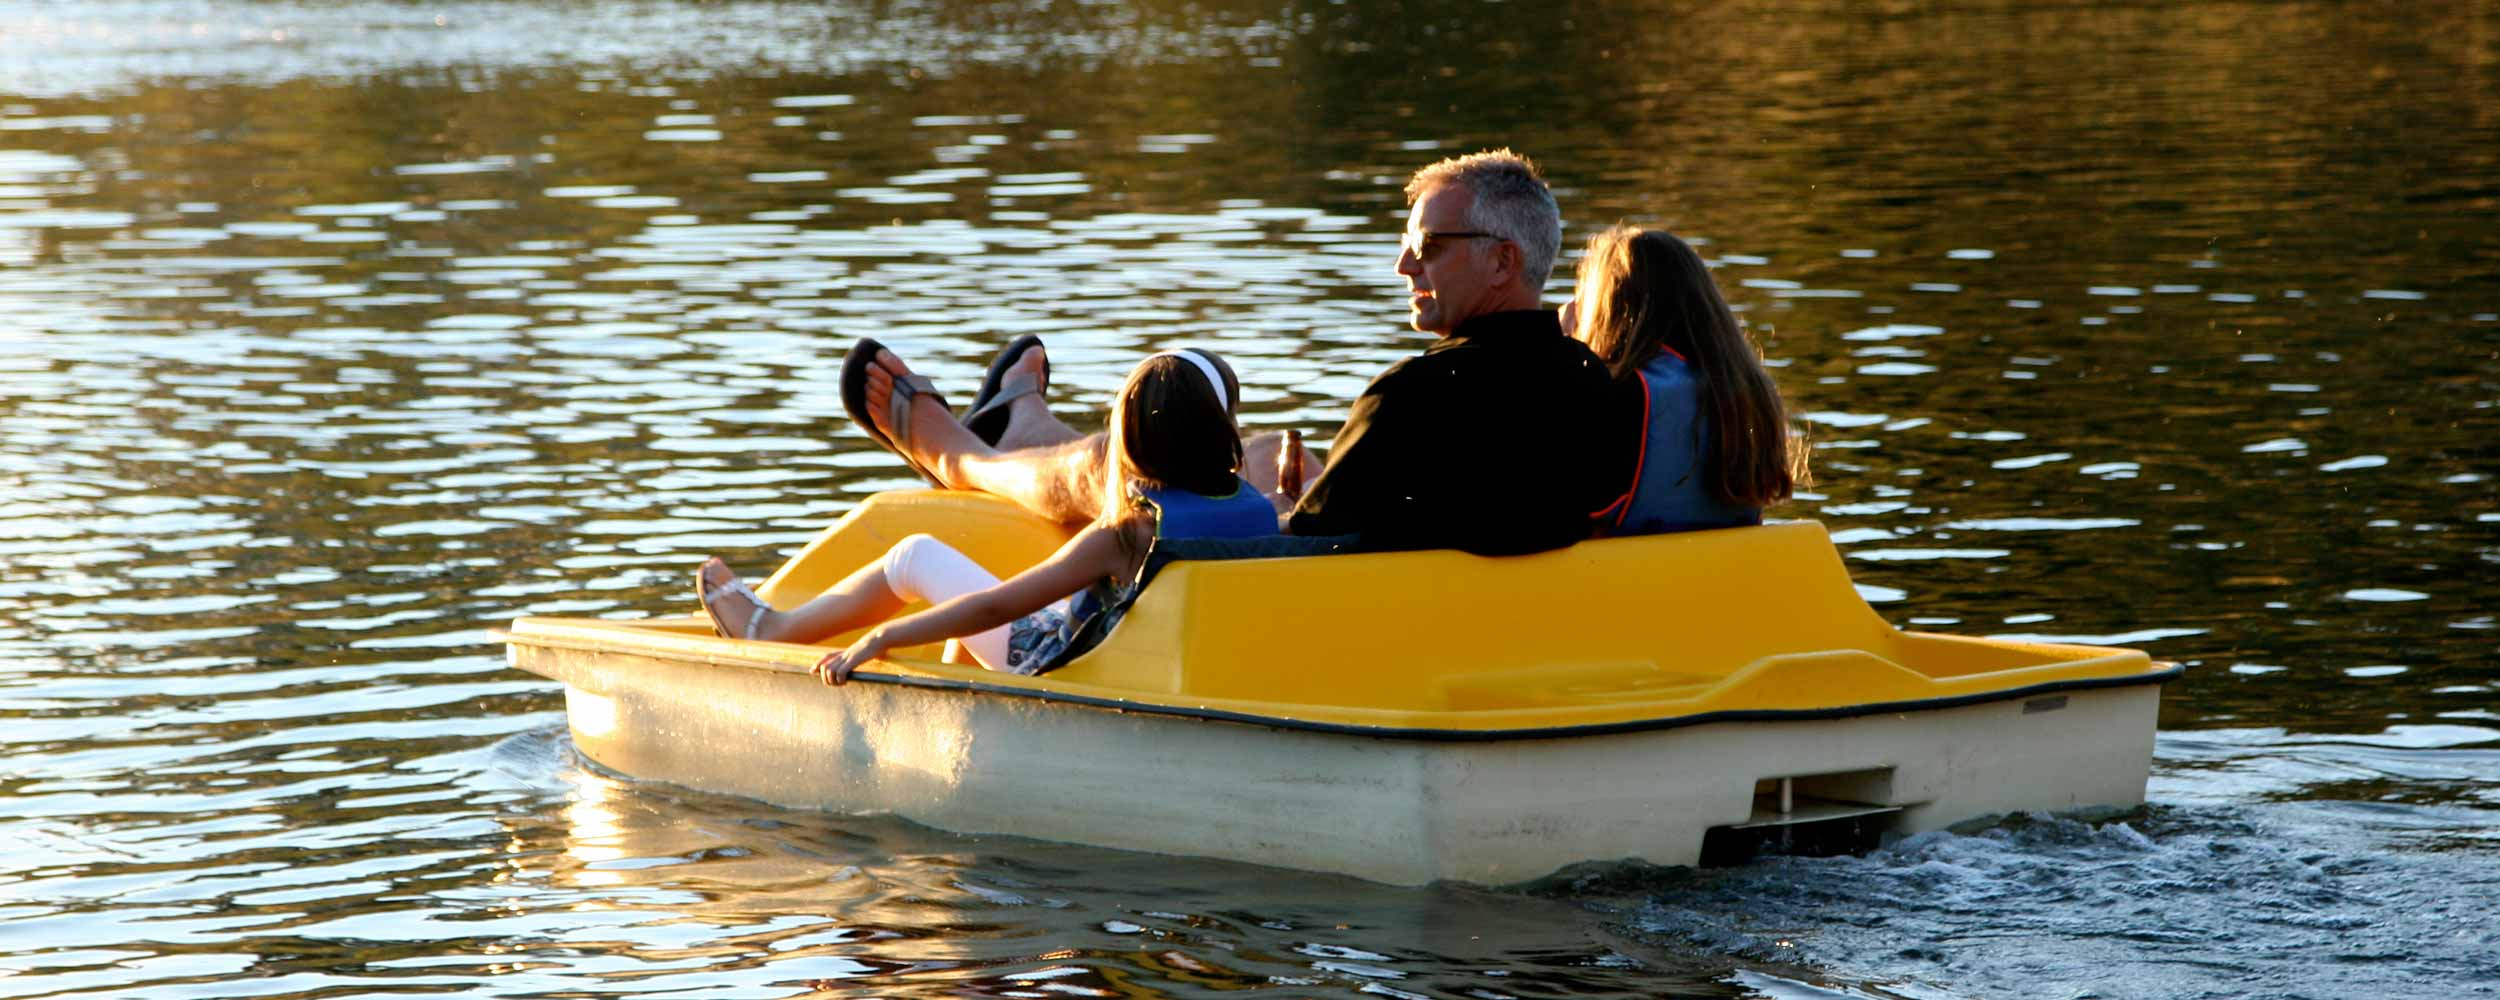 Paddle Boating on Alisal Lake - Alisal Resort in Solvang California